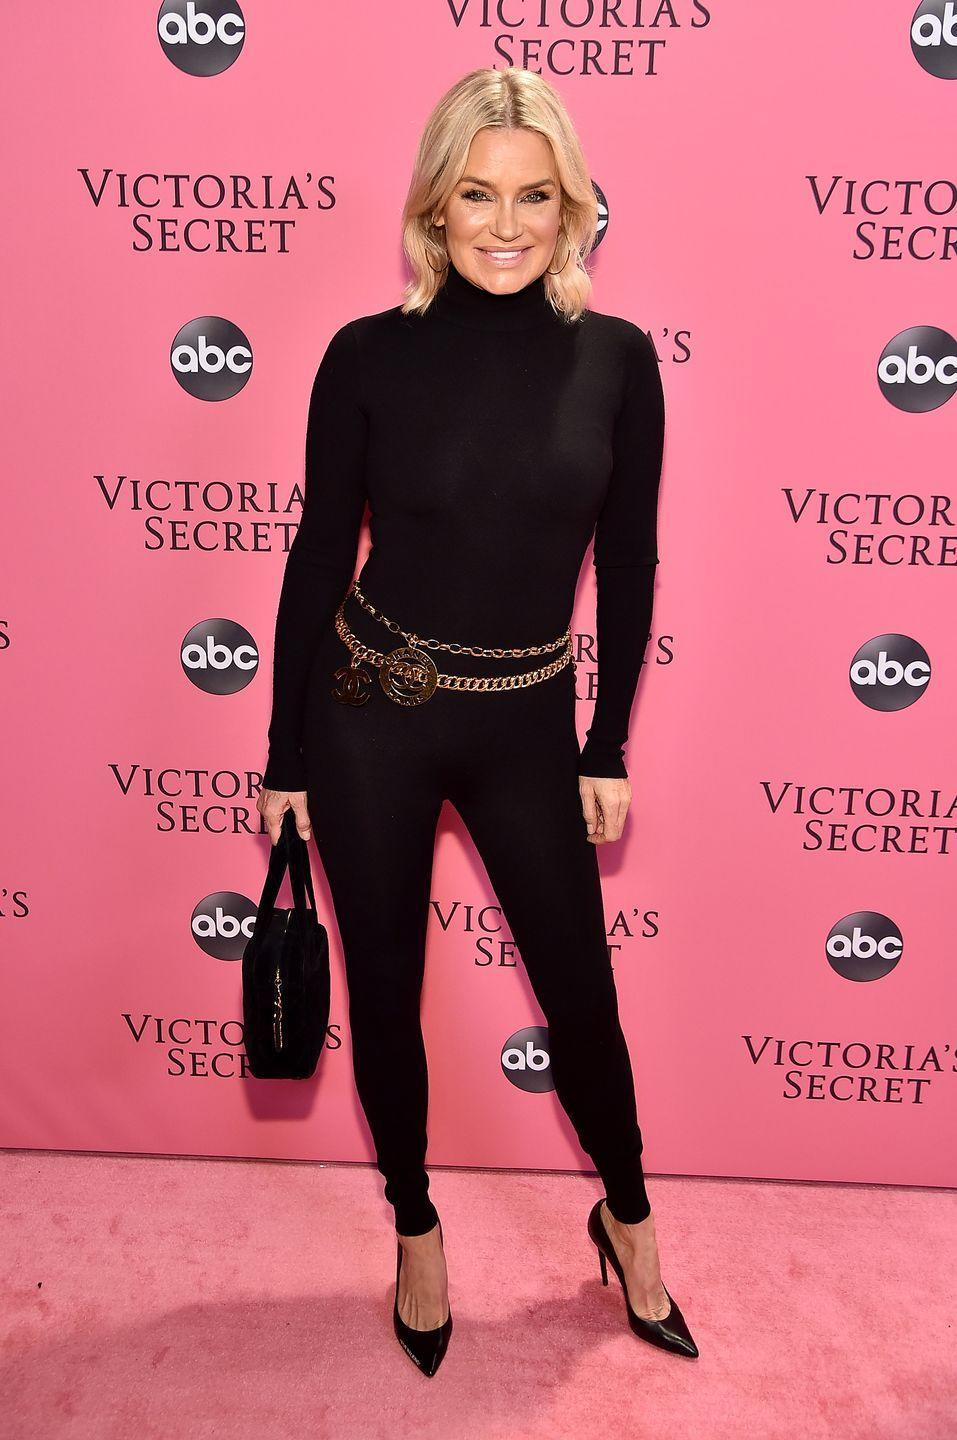 <p>Yolanda Hadid's stint on <em>Beverly Hills</em> was marred by her divorce from then-husband David Foster and her deteriorating health. She first appeared as a Housewife in season 3 and had a solid run until season 6, when her struggles with Lyme disease made it difficult for her to meet the demands of production. Yolanda is faring well, though, as the momager of her two supermodel daughters, Gigi Hadid and Bella Hadid. </p>